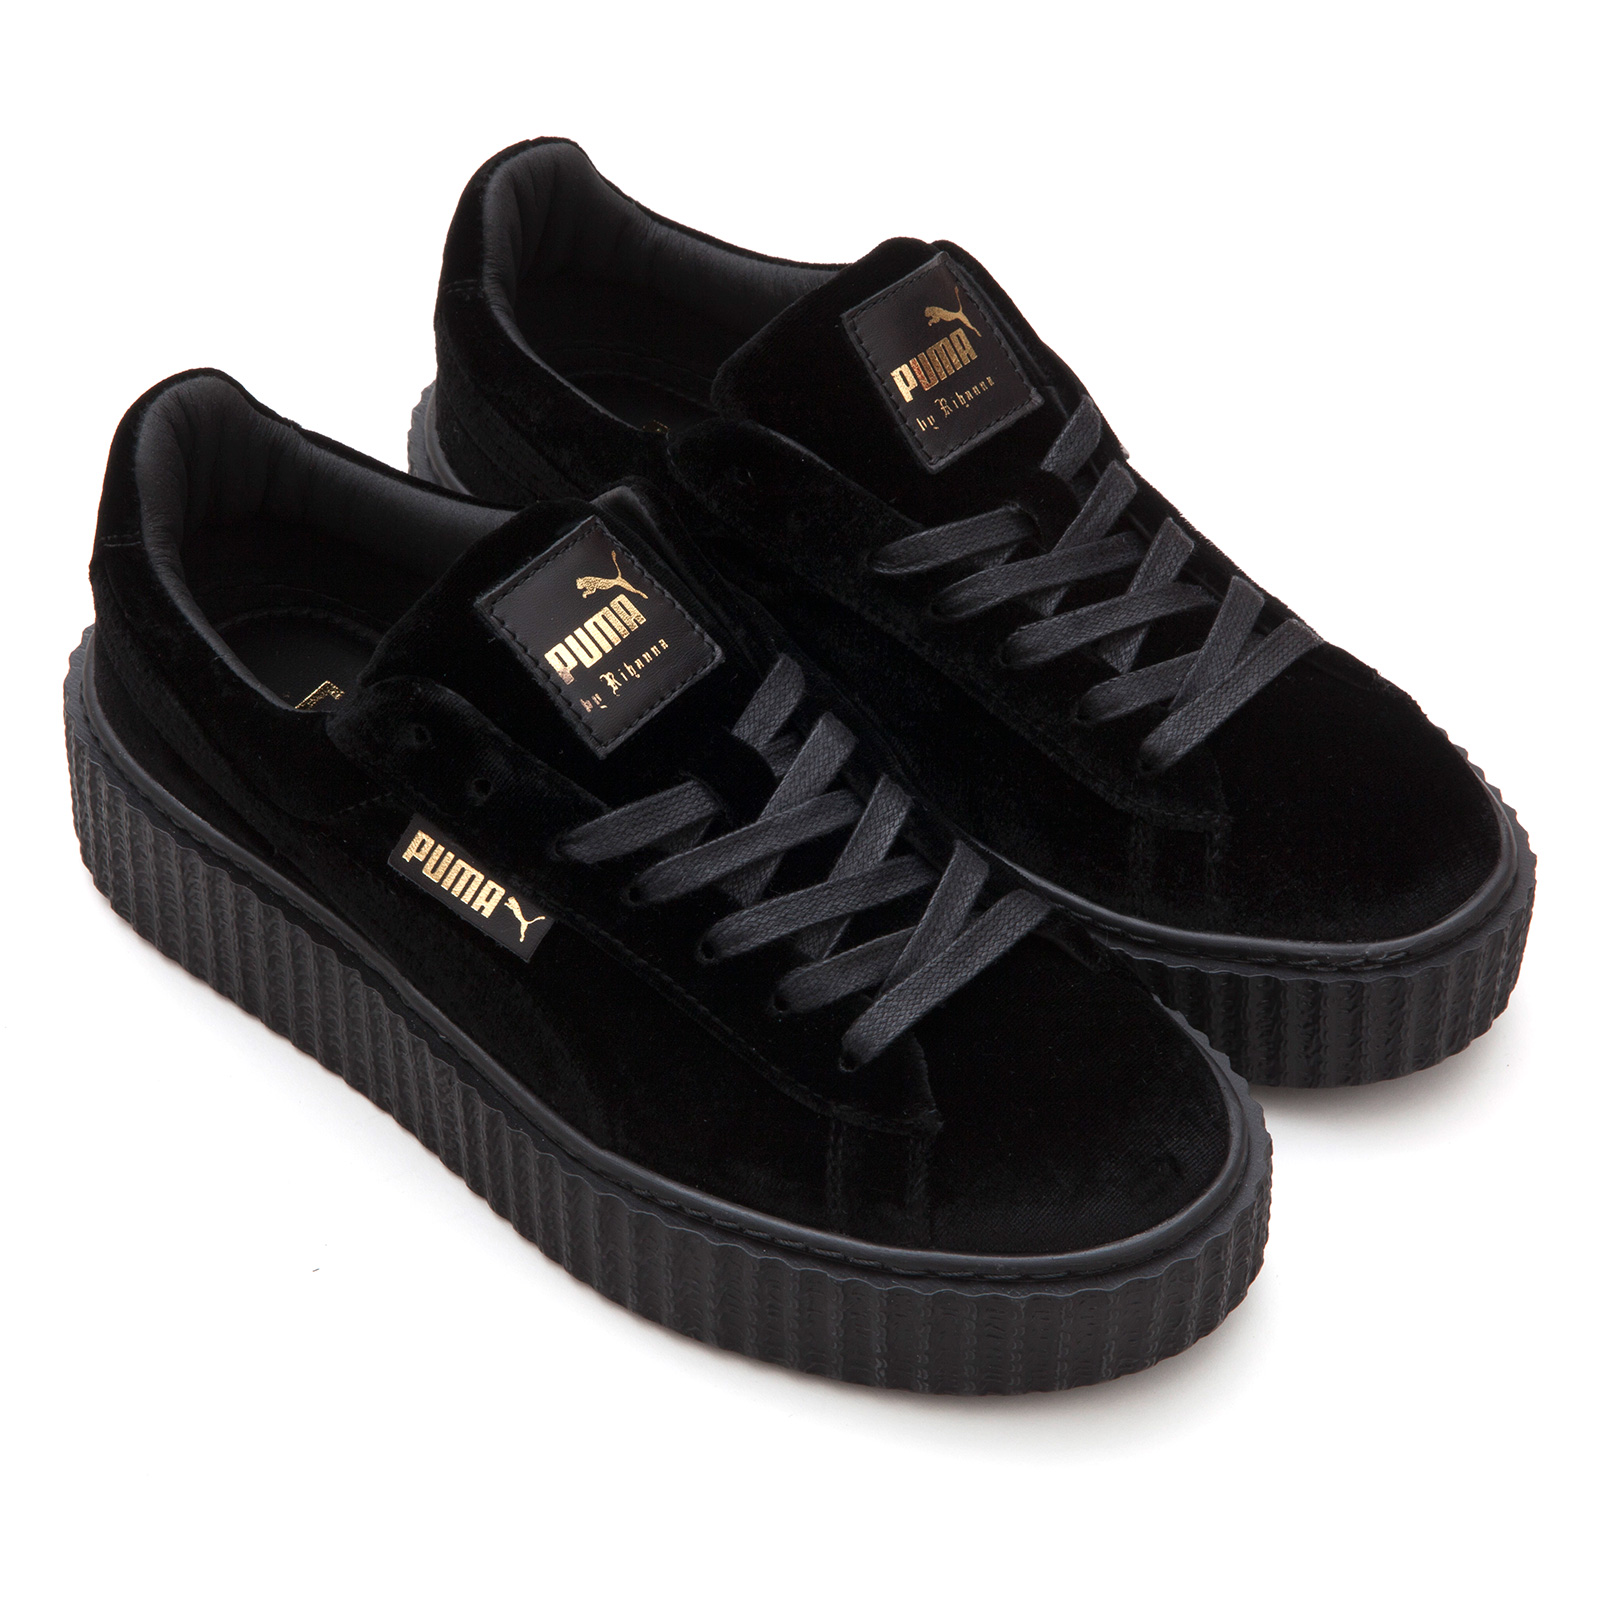 1b54cc52b7ba Puma by Rihanna Fenty Women s Creepers Velvet Black Shoes on Storenvy